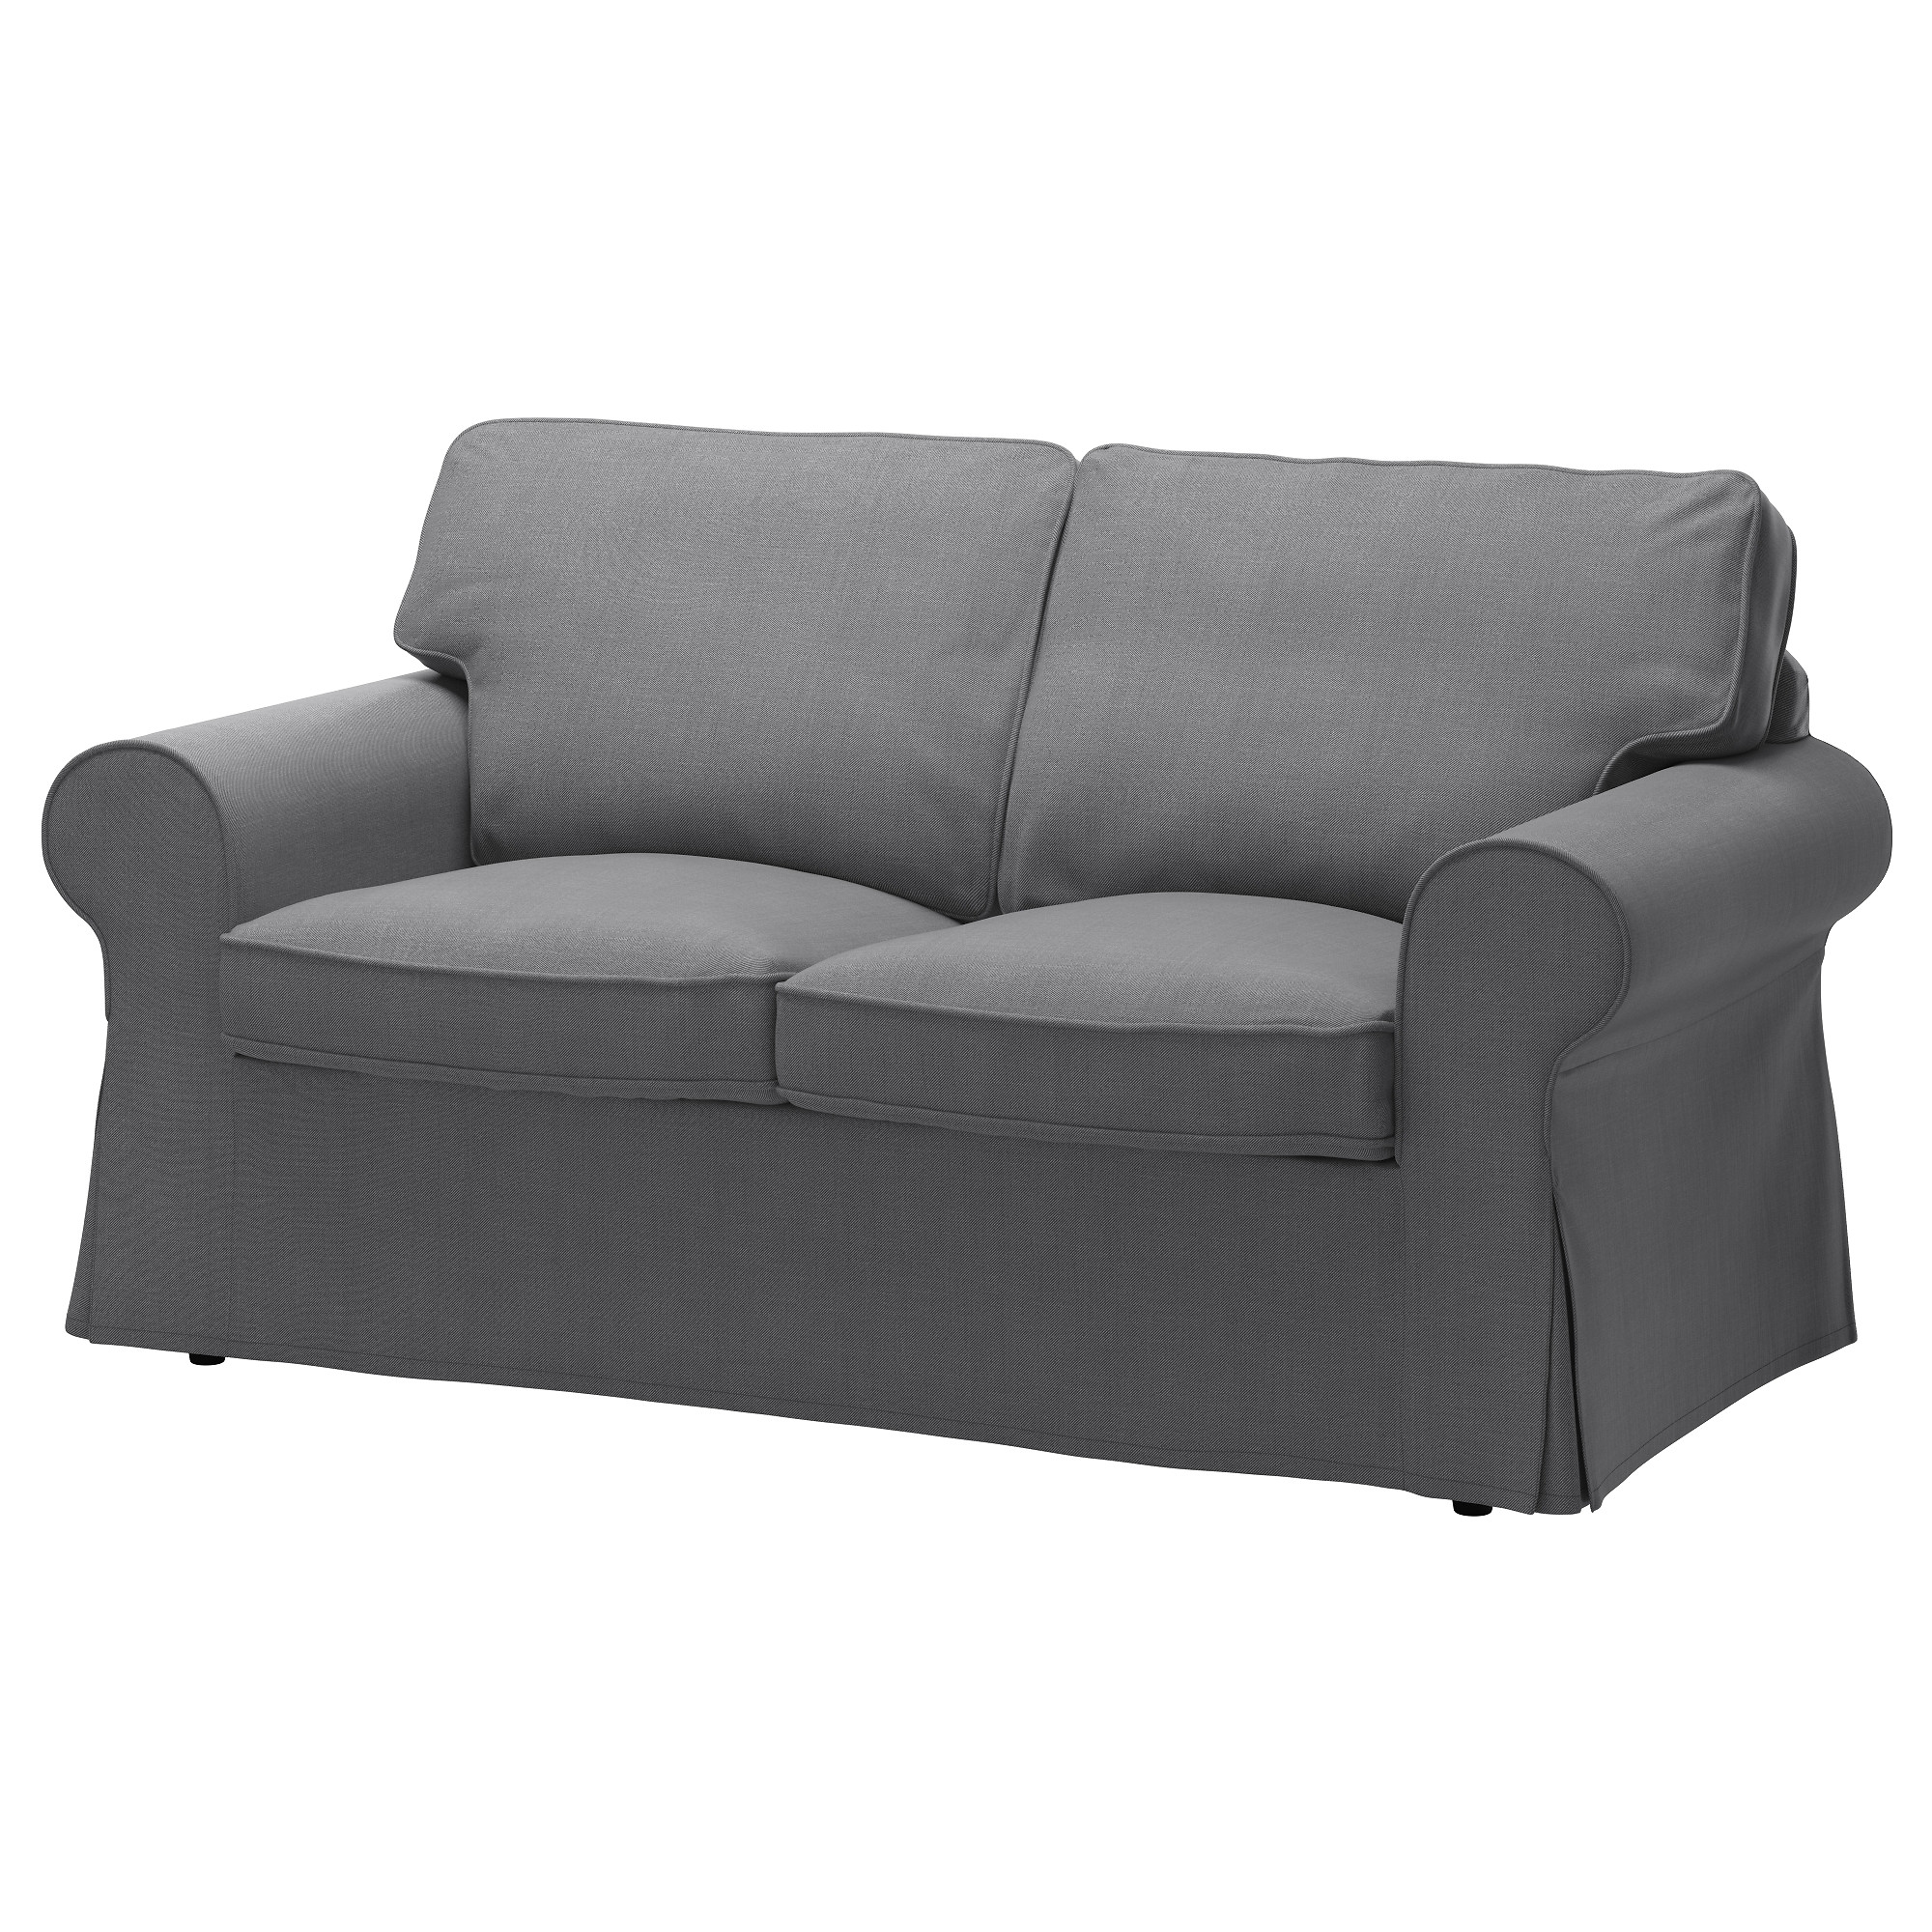 two seater sofa ikea ektorp two-seat sofa 10 year guarantee. read about the terms in the MAUAGOJ